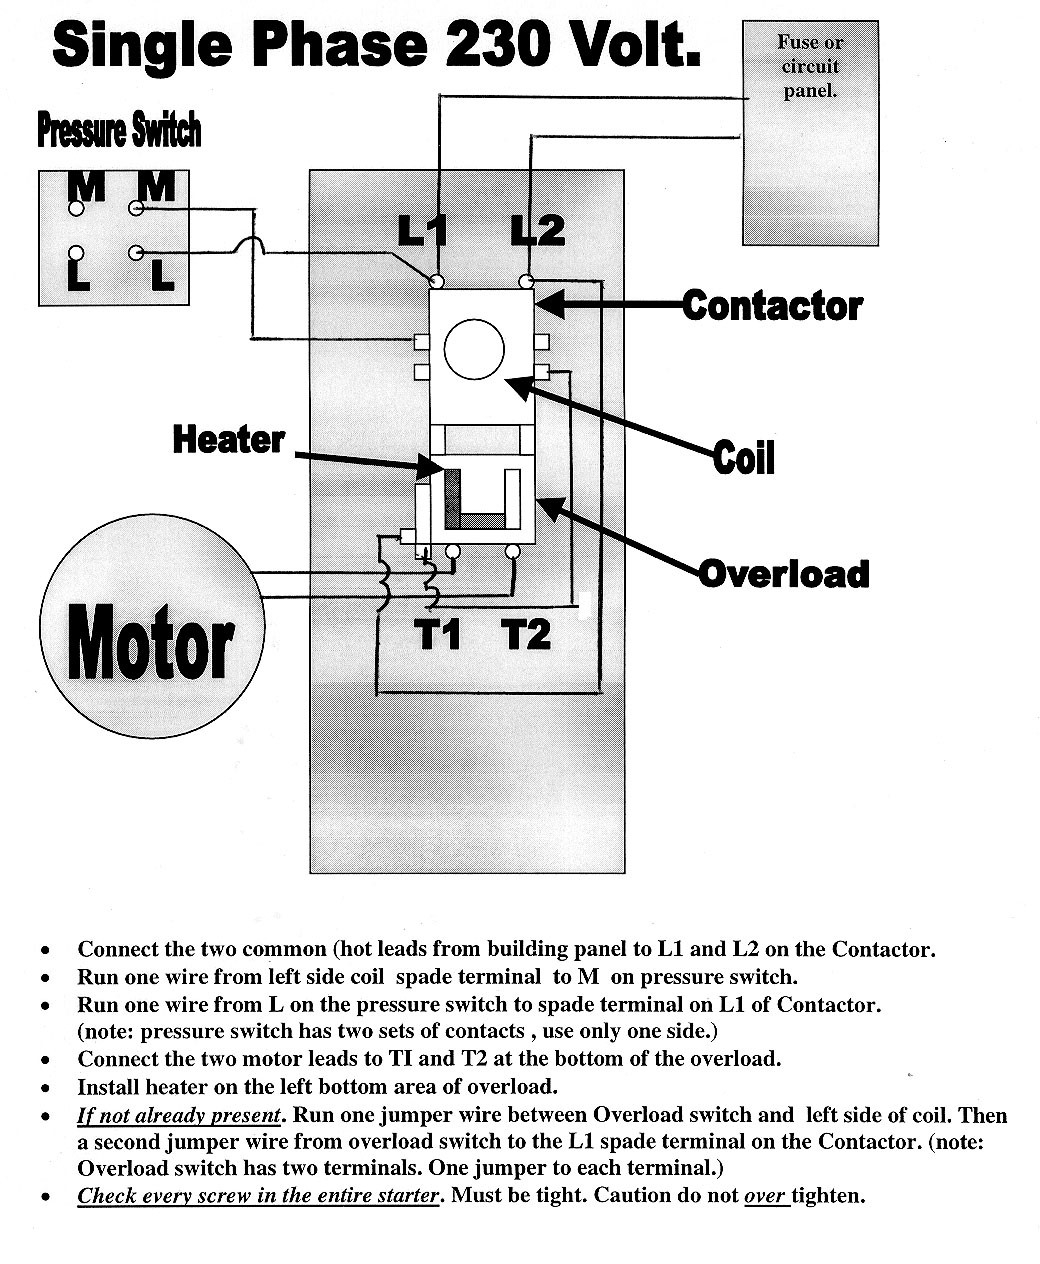 3 Phase Motor Starter Wiring Diagram - Weg Motor Capacitor Wiring Diagrams Schematics and Baldor Diagram In Cutler Hammer Starter Wiring Diagram 10s